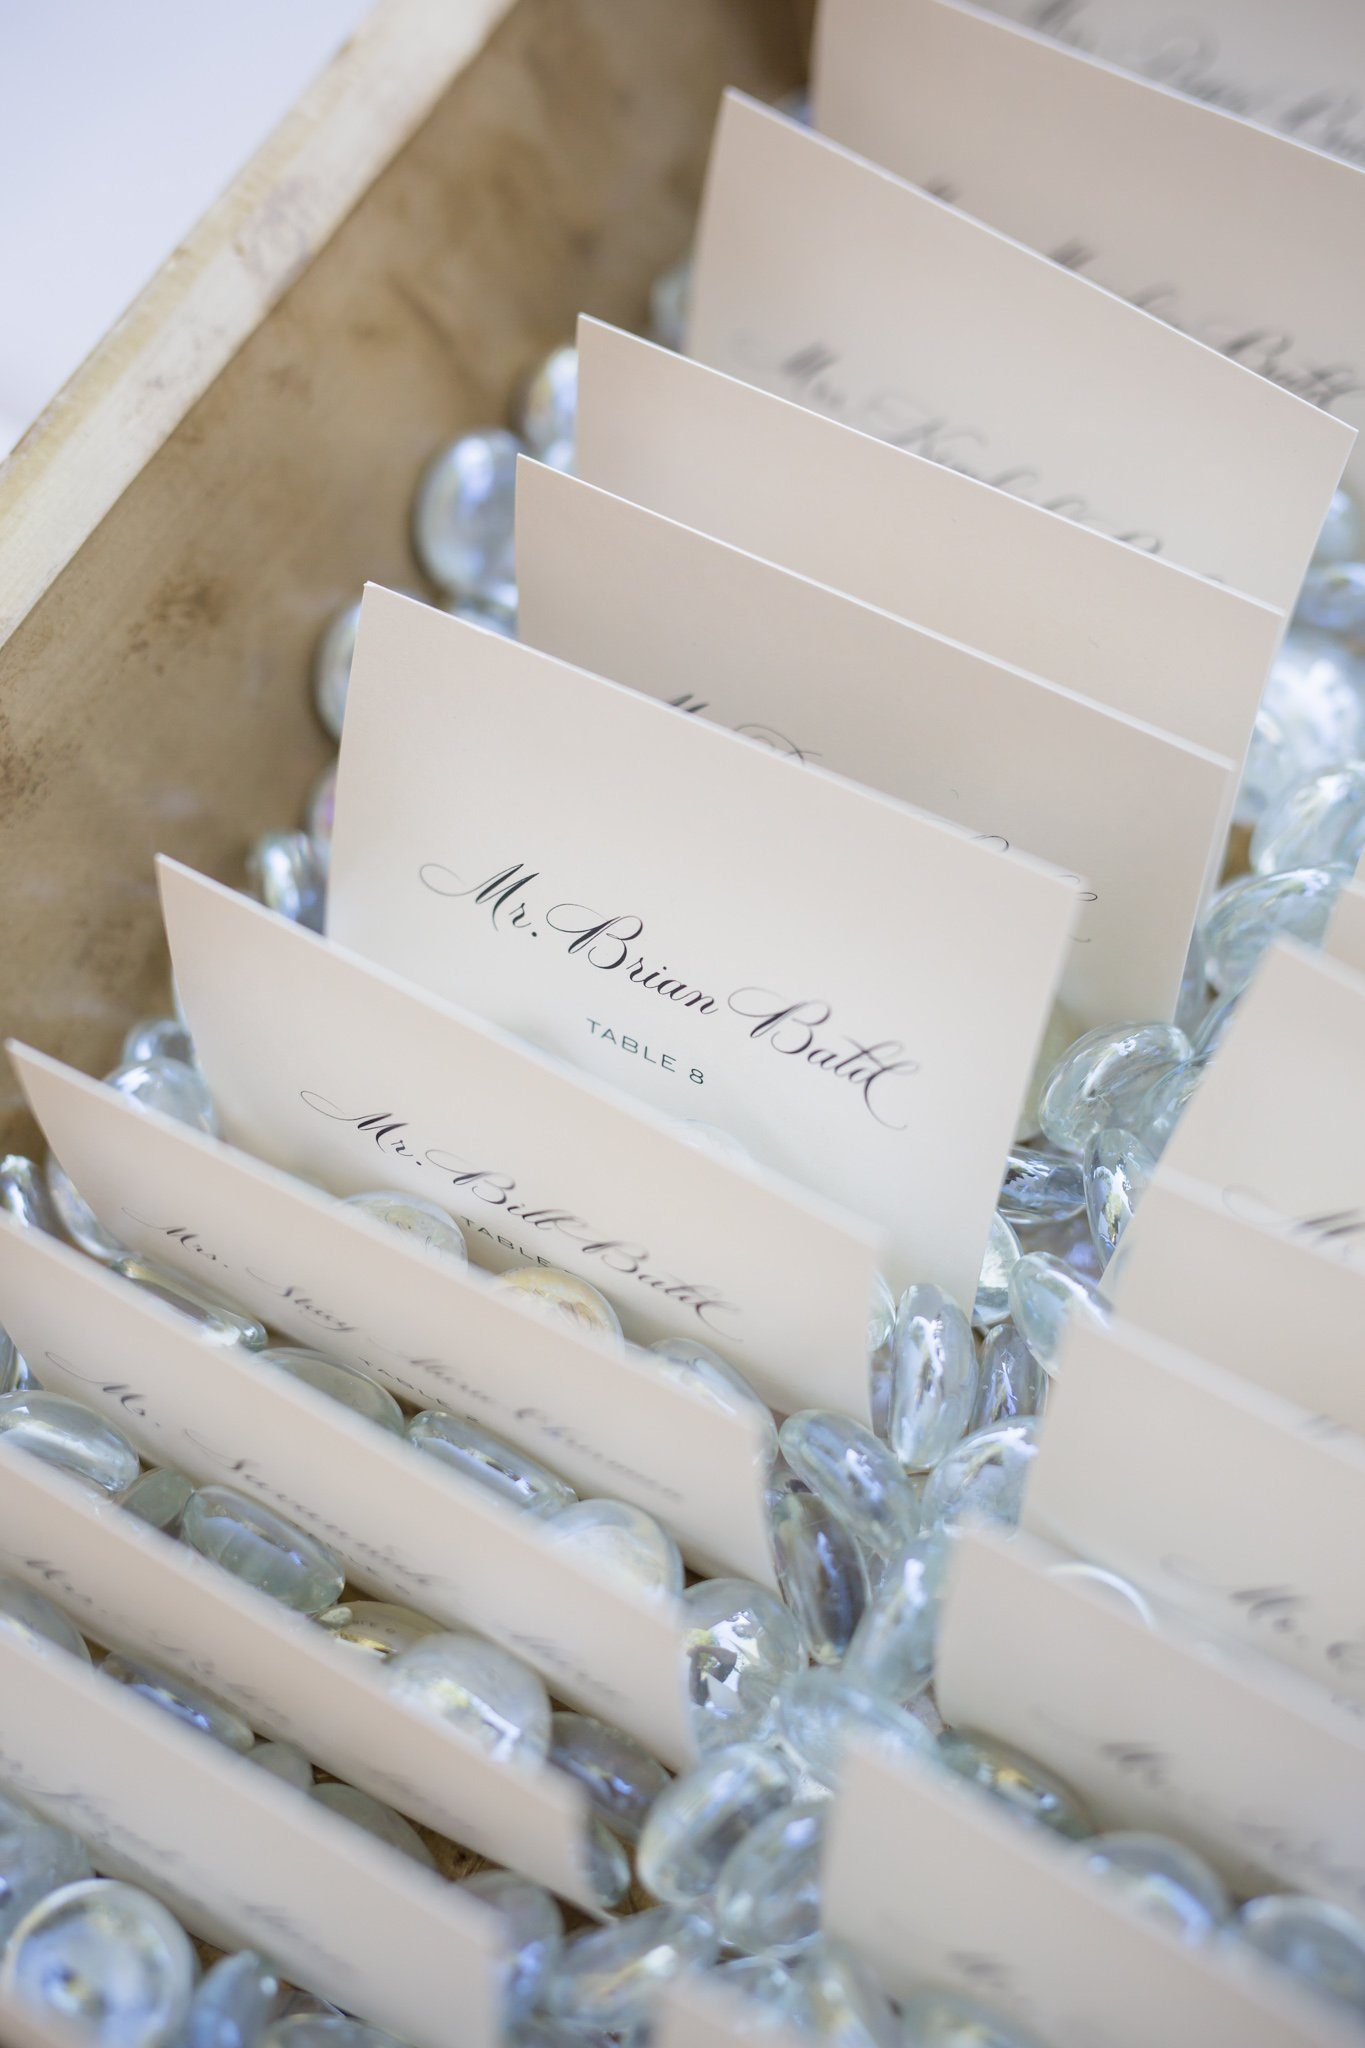 Emily & Anthony's Place Cards